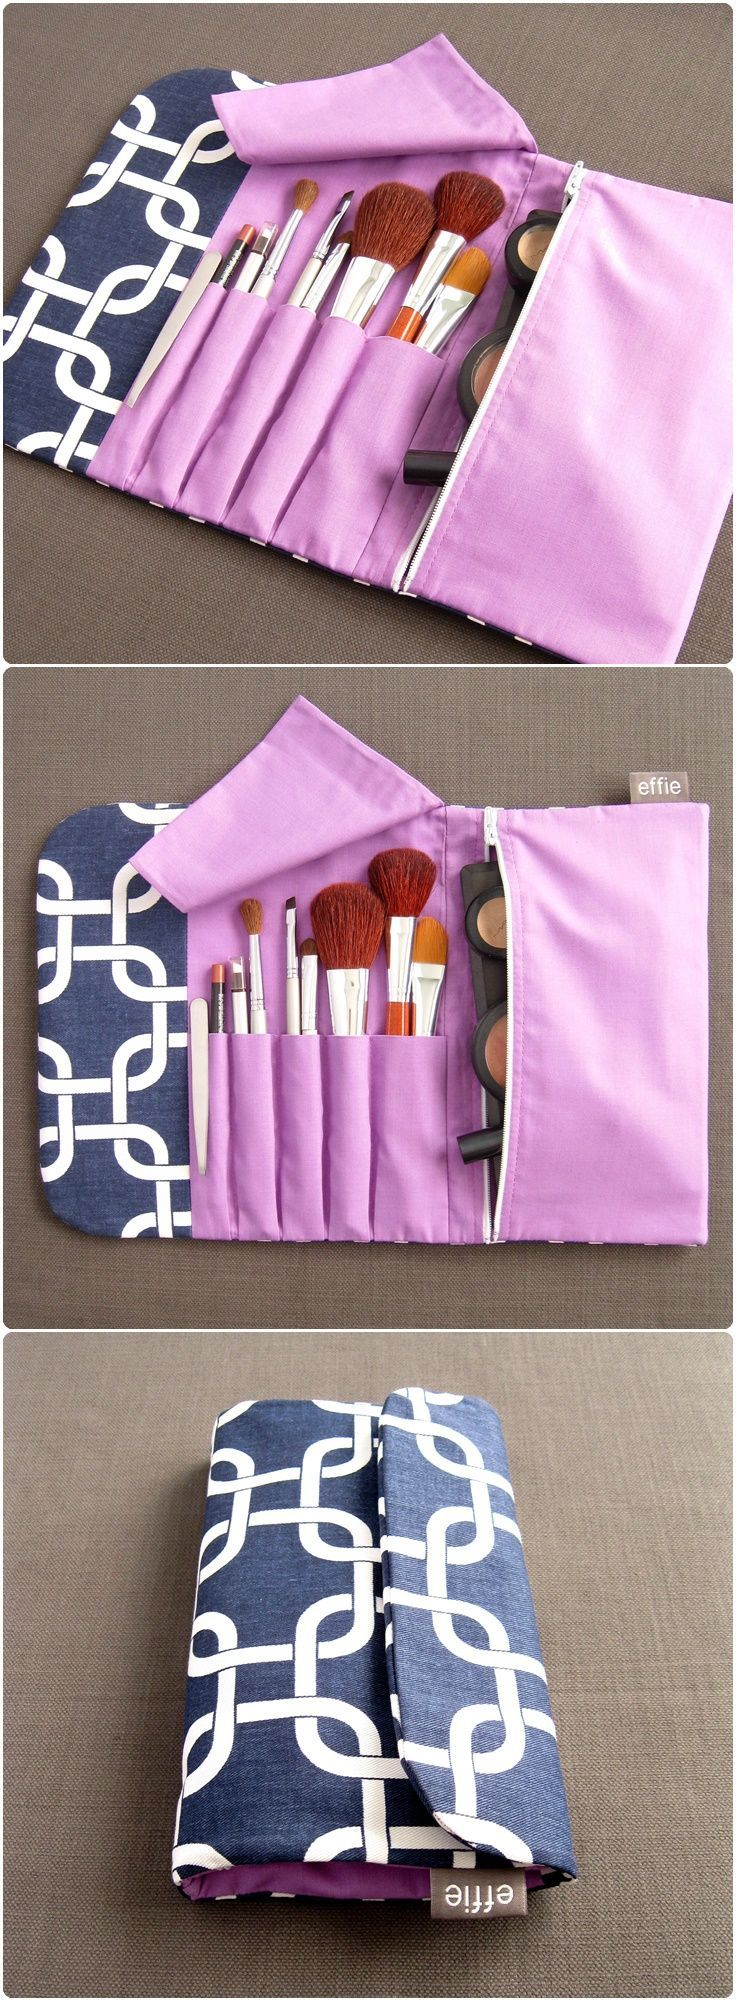 Travel Make-Up Case. All-in-One Brush Roll & Makeup Bag in Navy. Travel Gift Idea. Makeup Brush Bag. Gift for Her. Travel Accessories